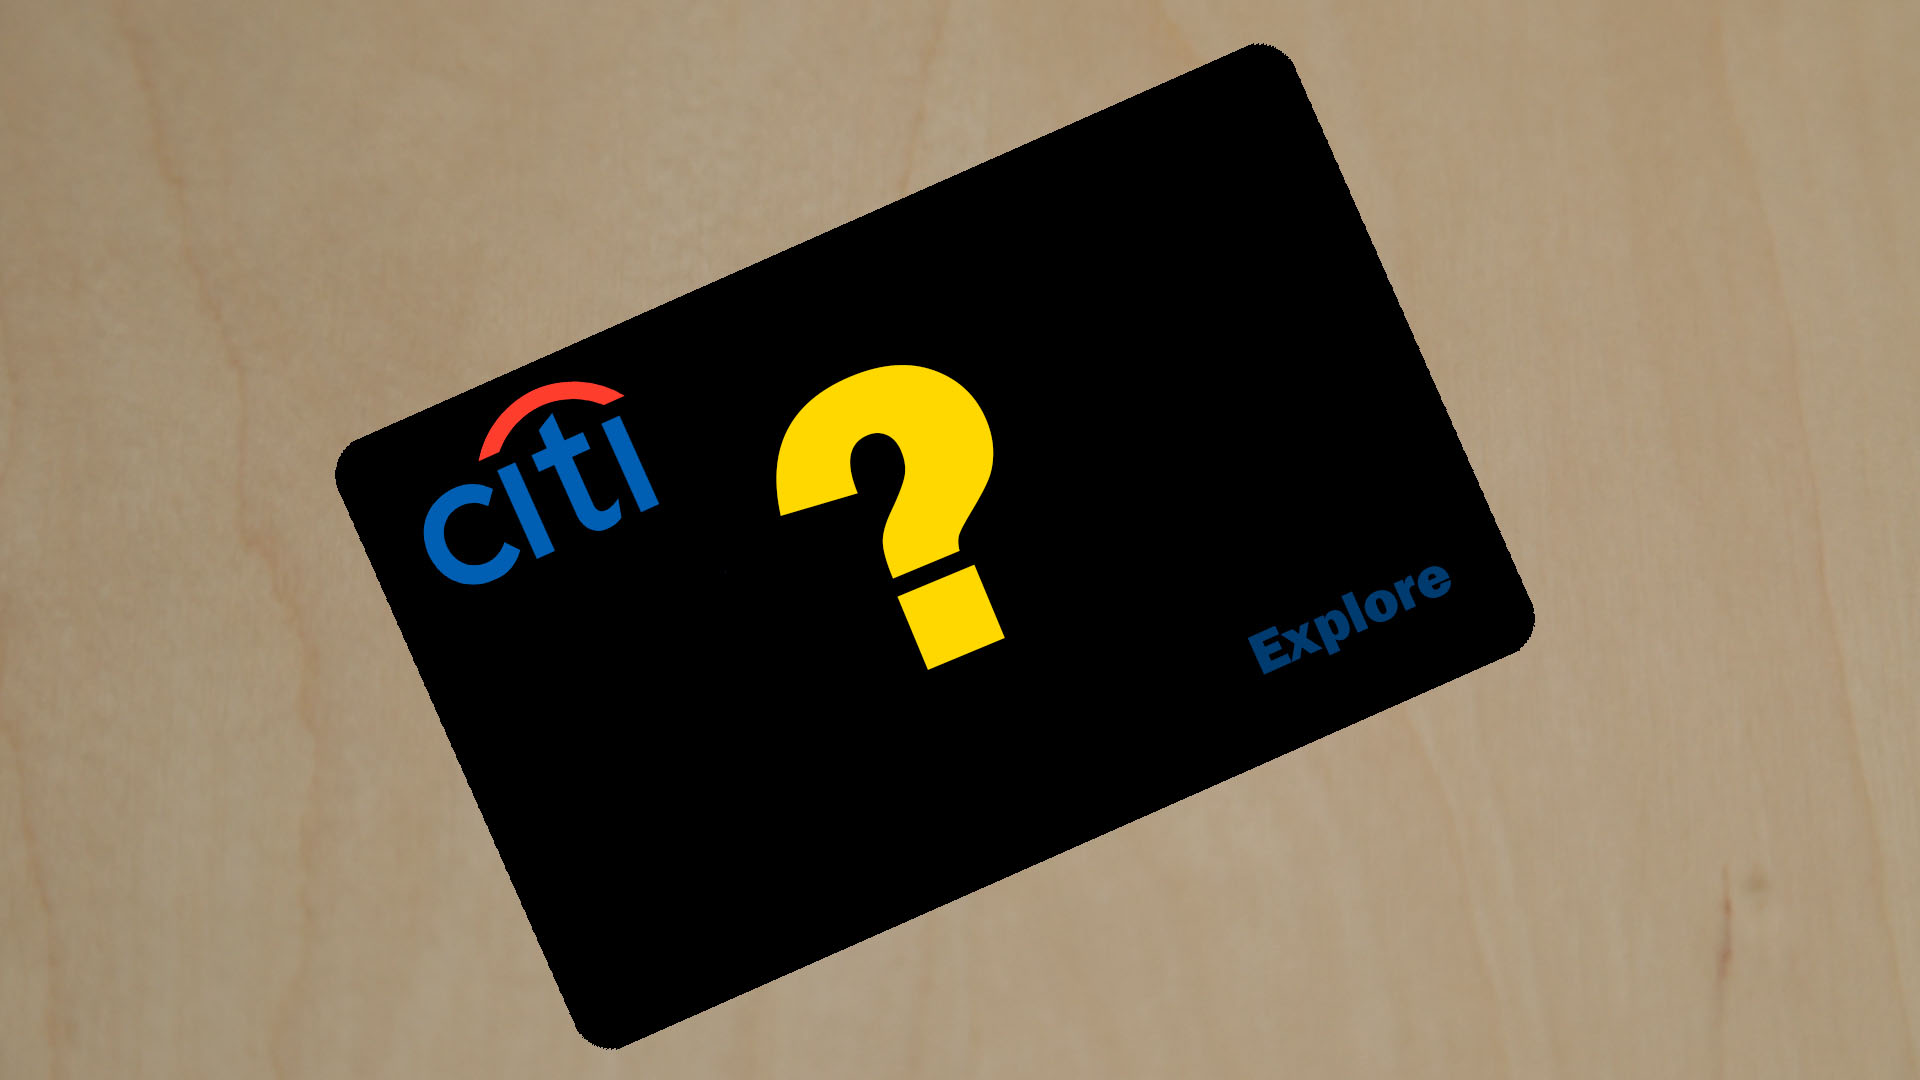 how to reset pin of citibank credit card